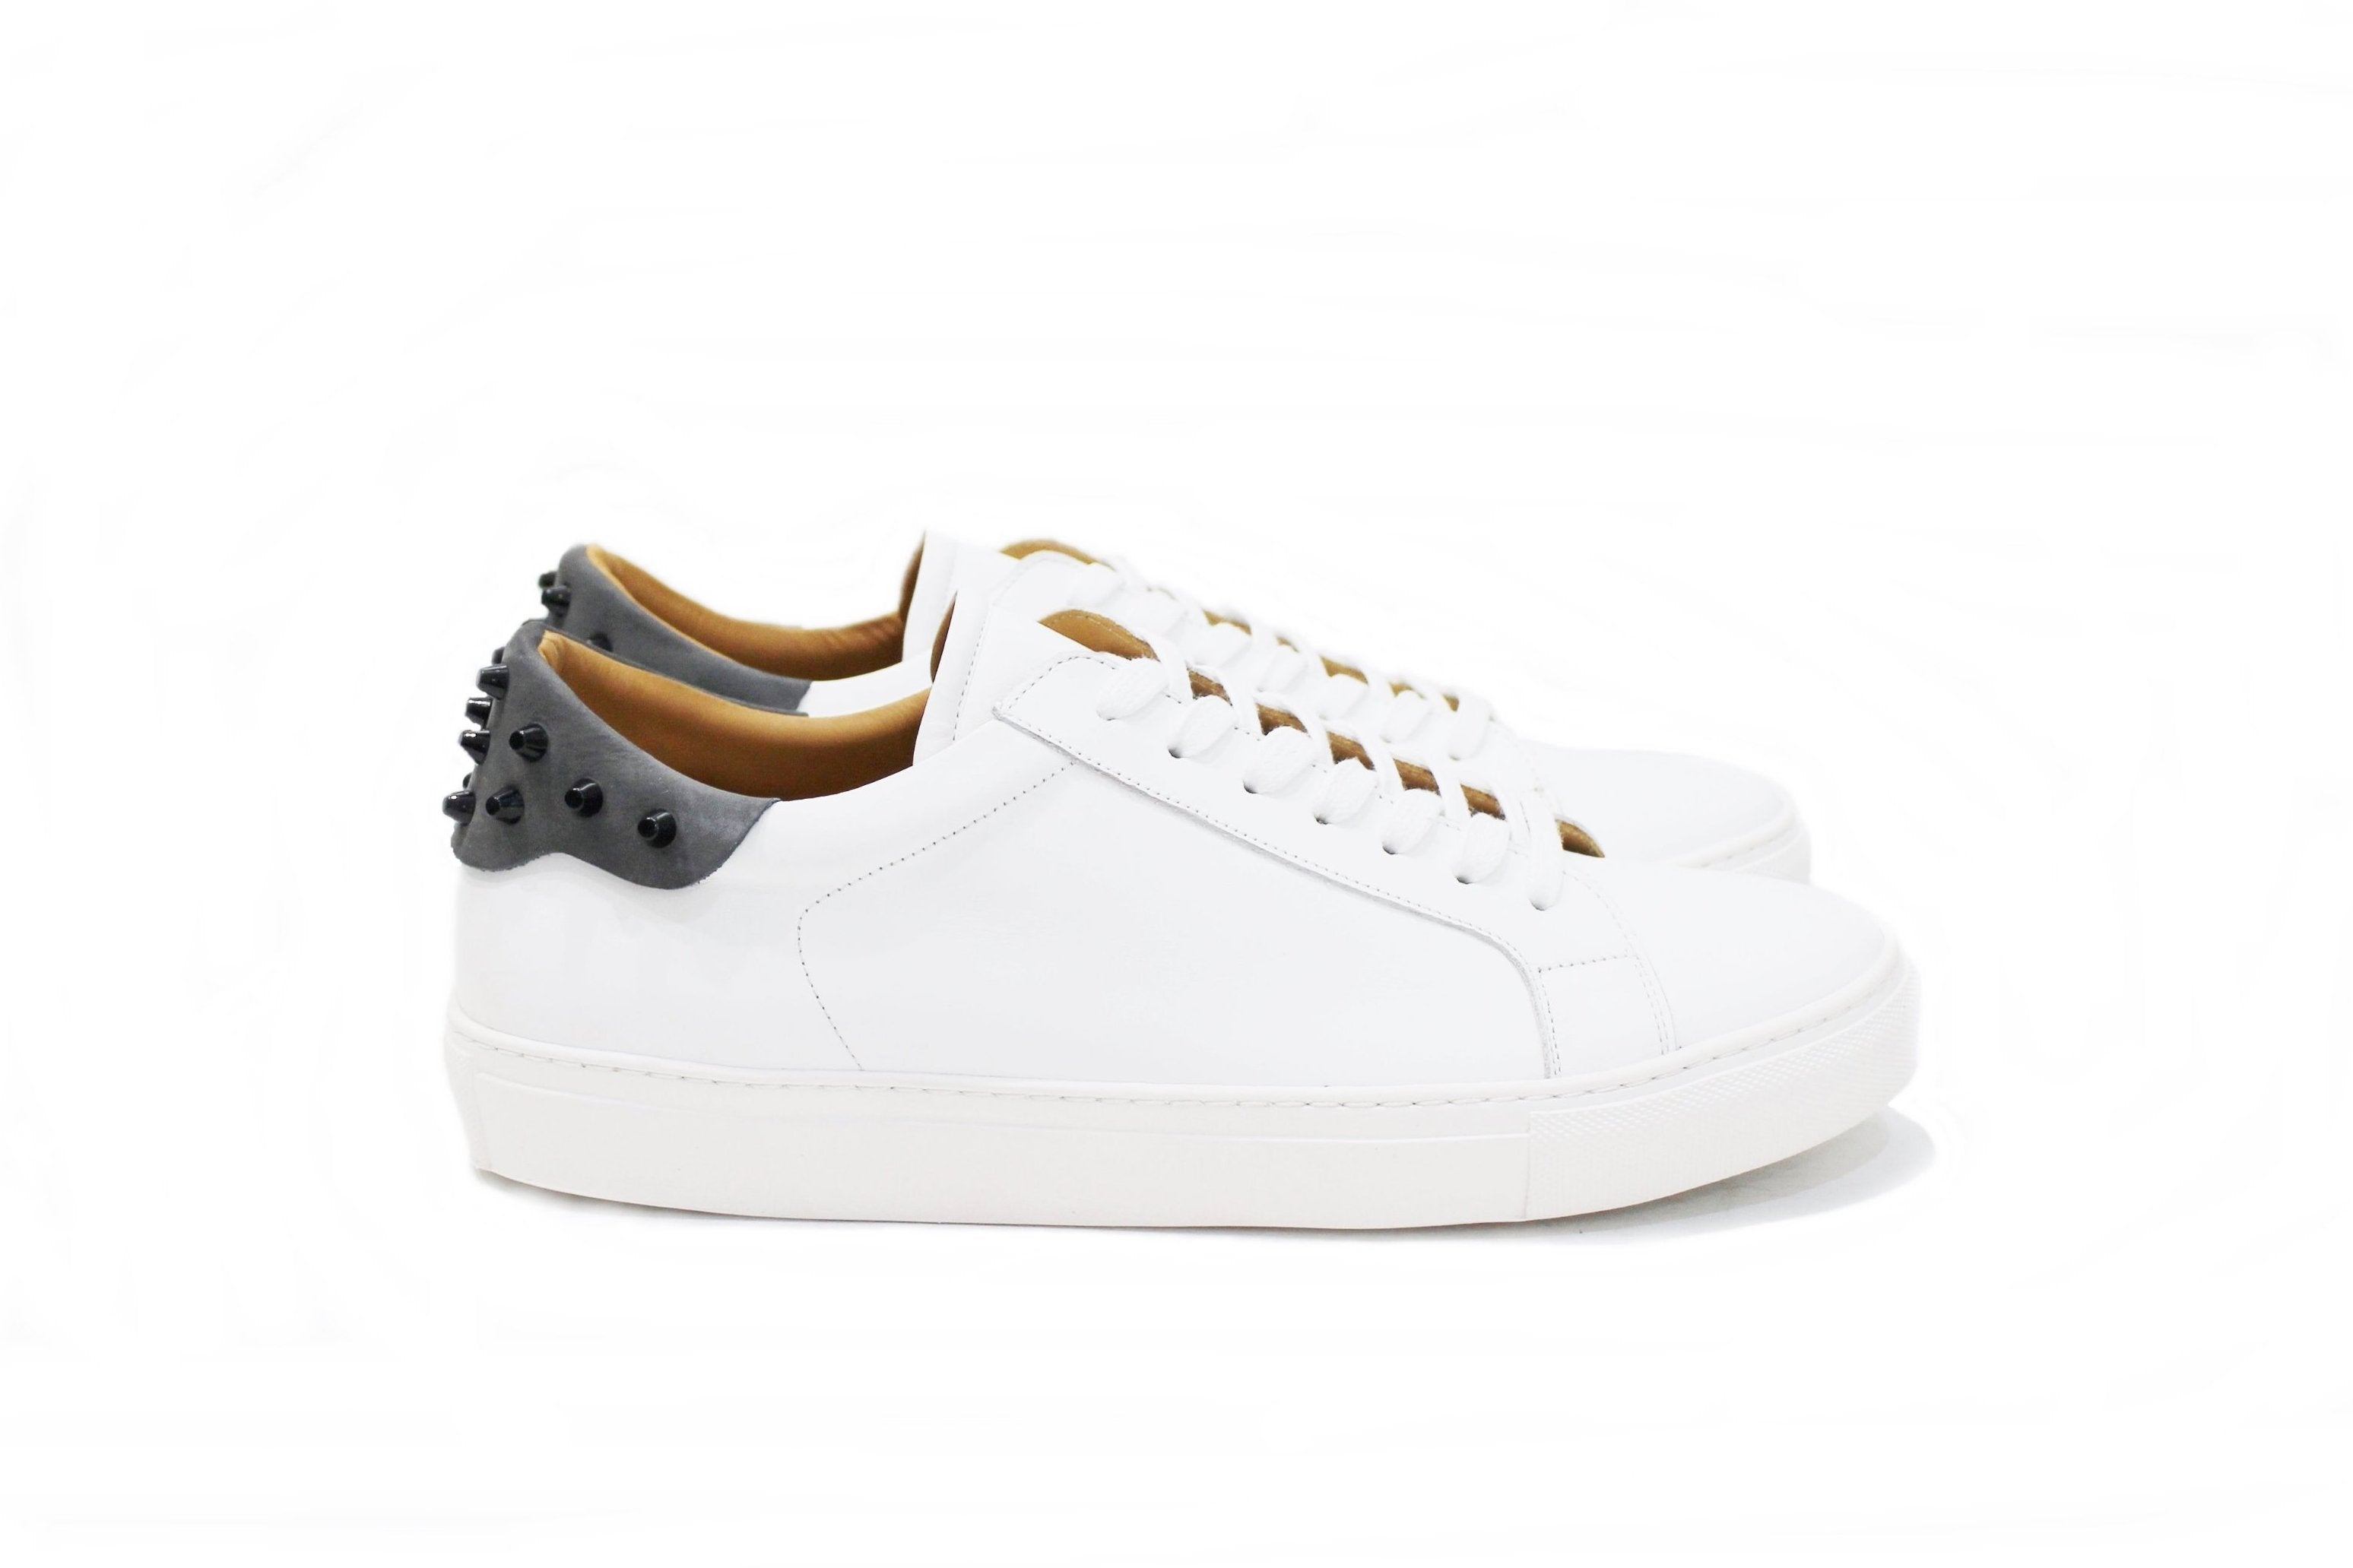 Attribute  gray, sneaker for men with lots of personality, adapting to various styles. Very accommodating. Walk with Pintta